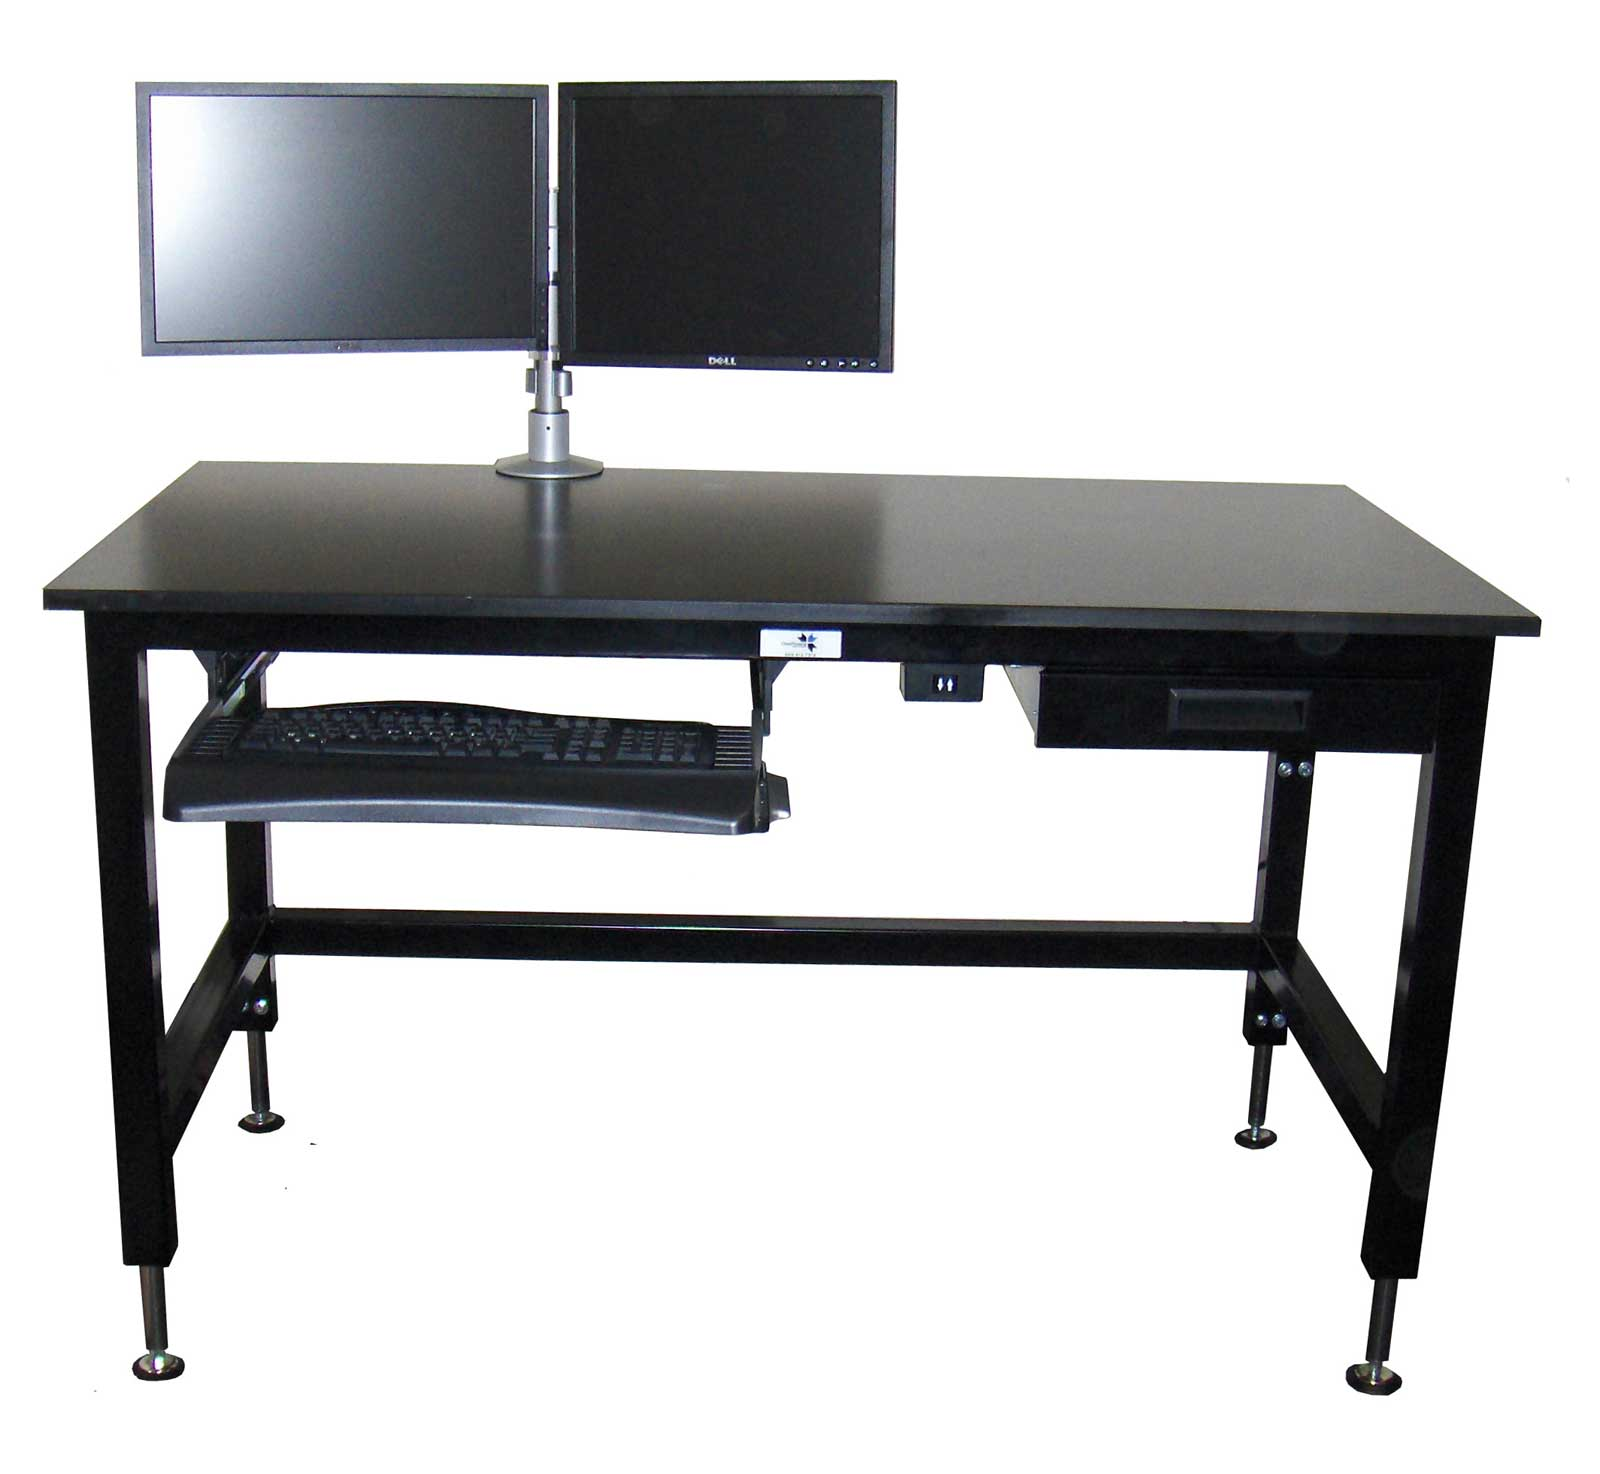 Black computer desk with adjustable height feature